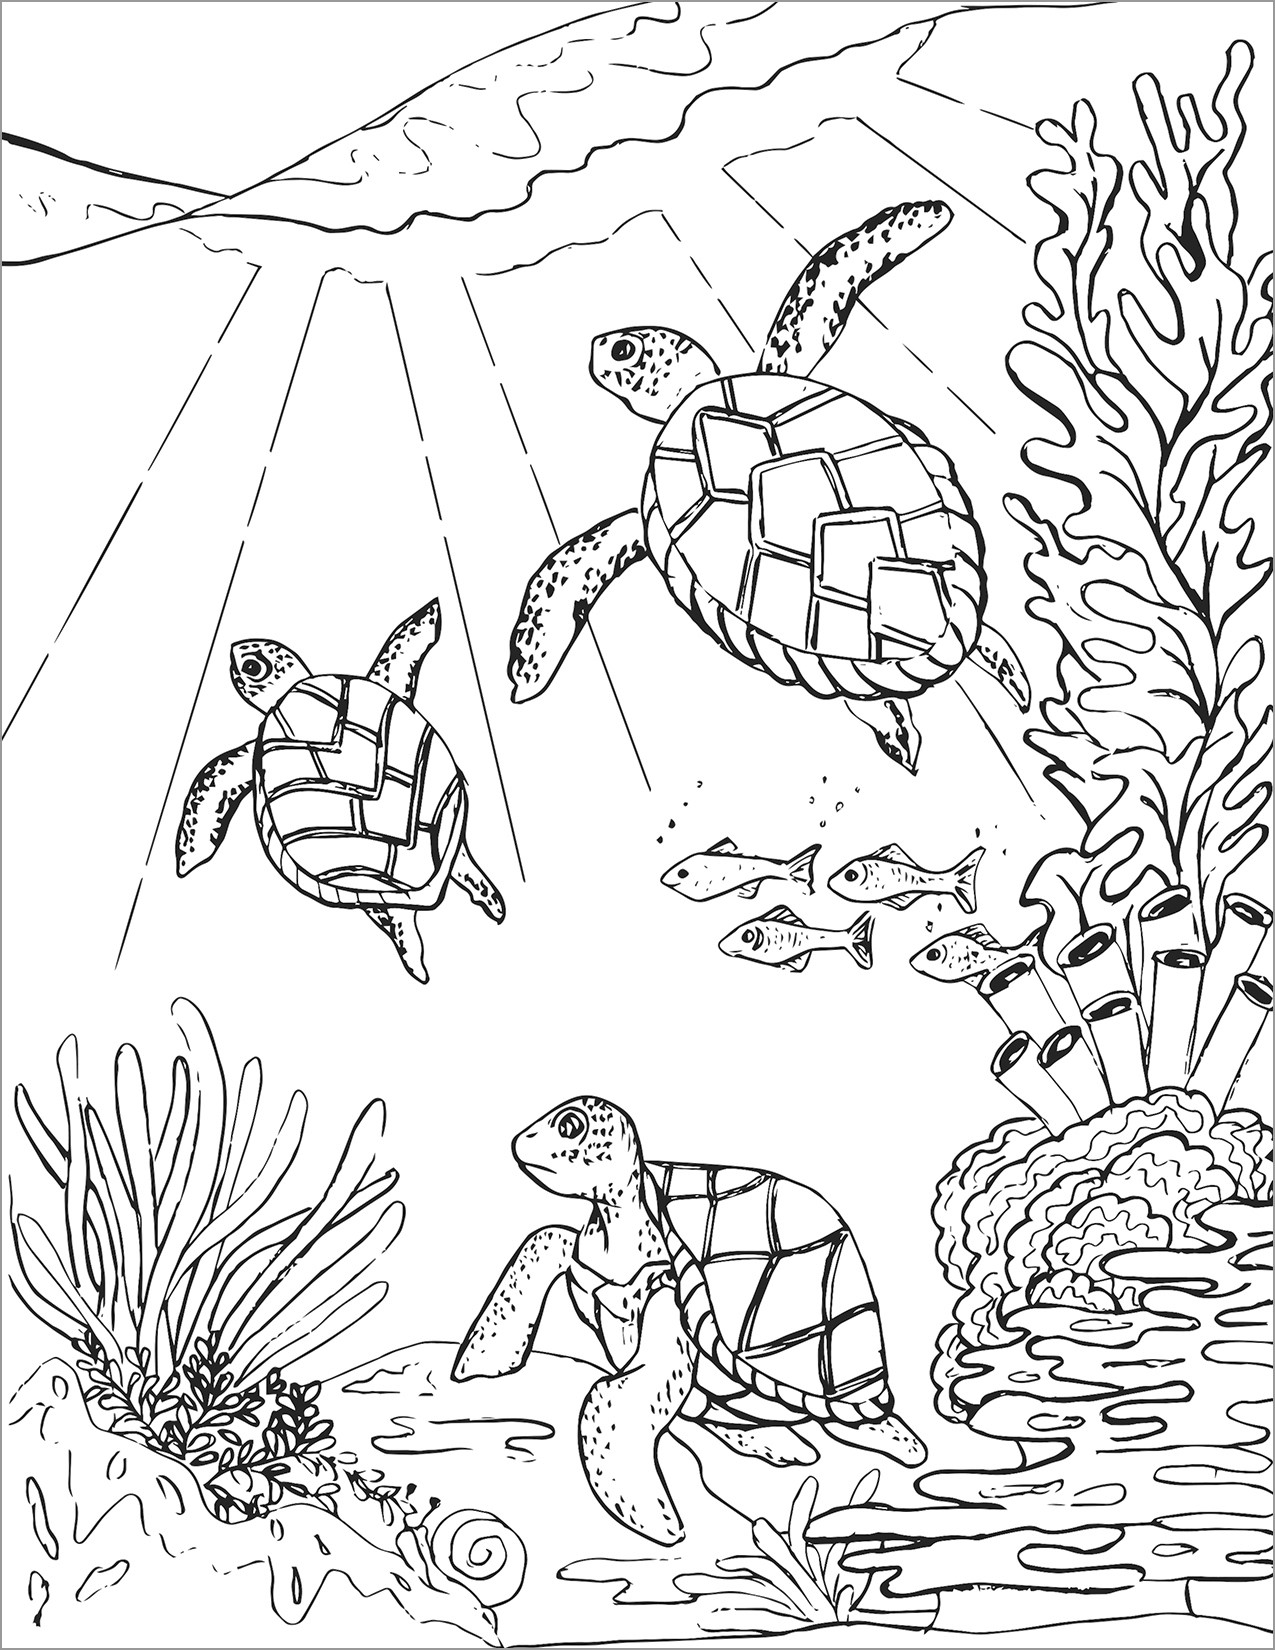 Detailed Turtle Coloring Page for Adult